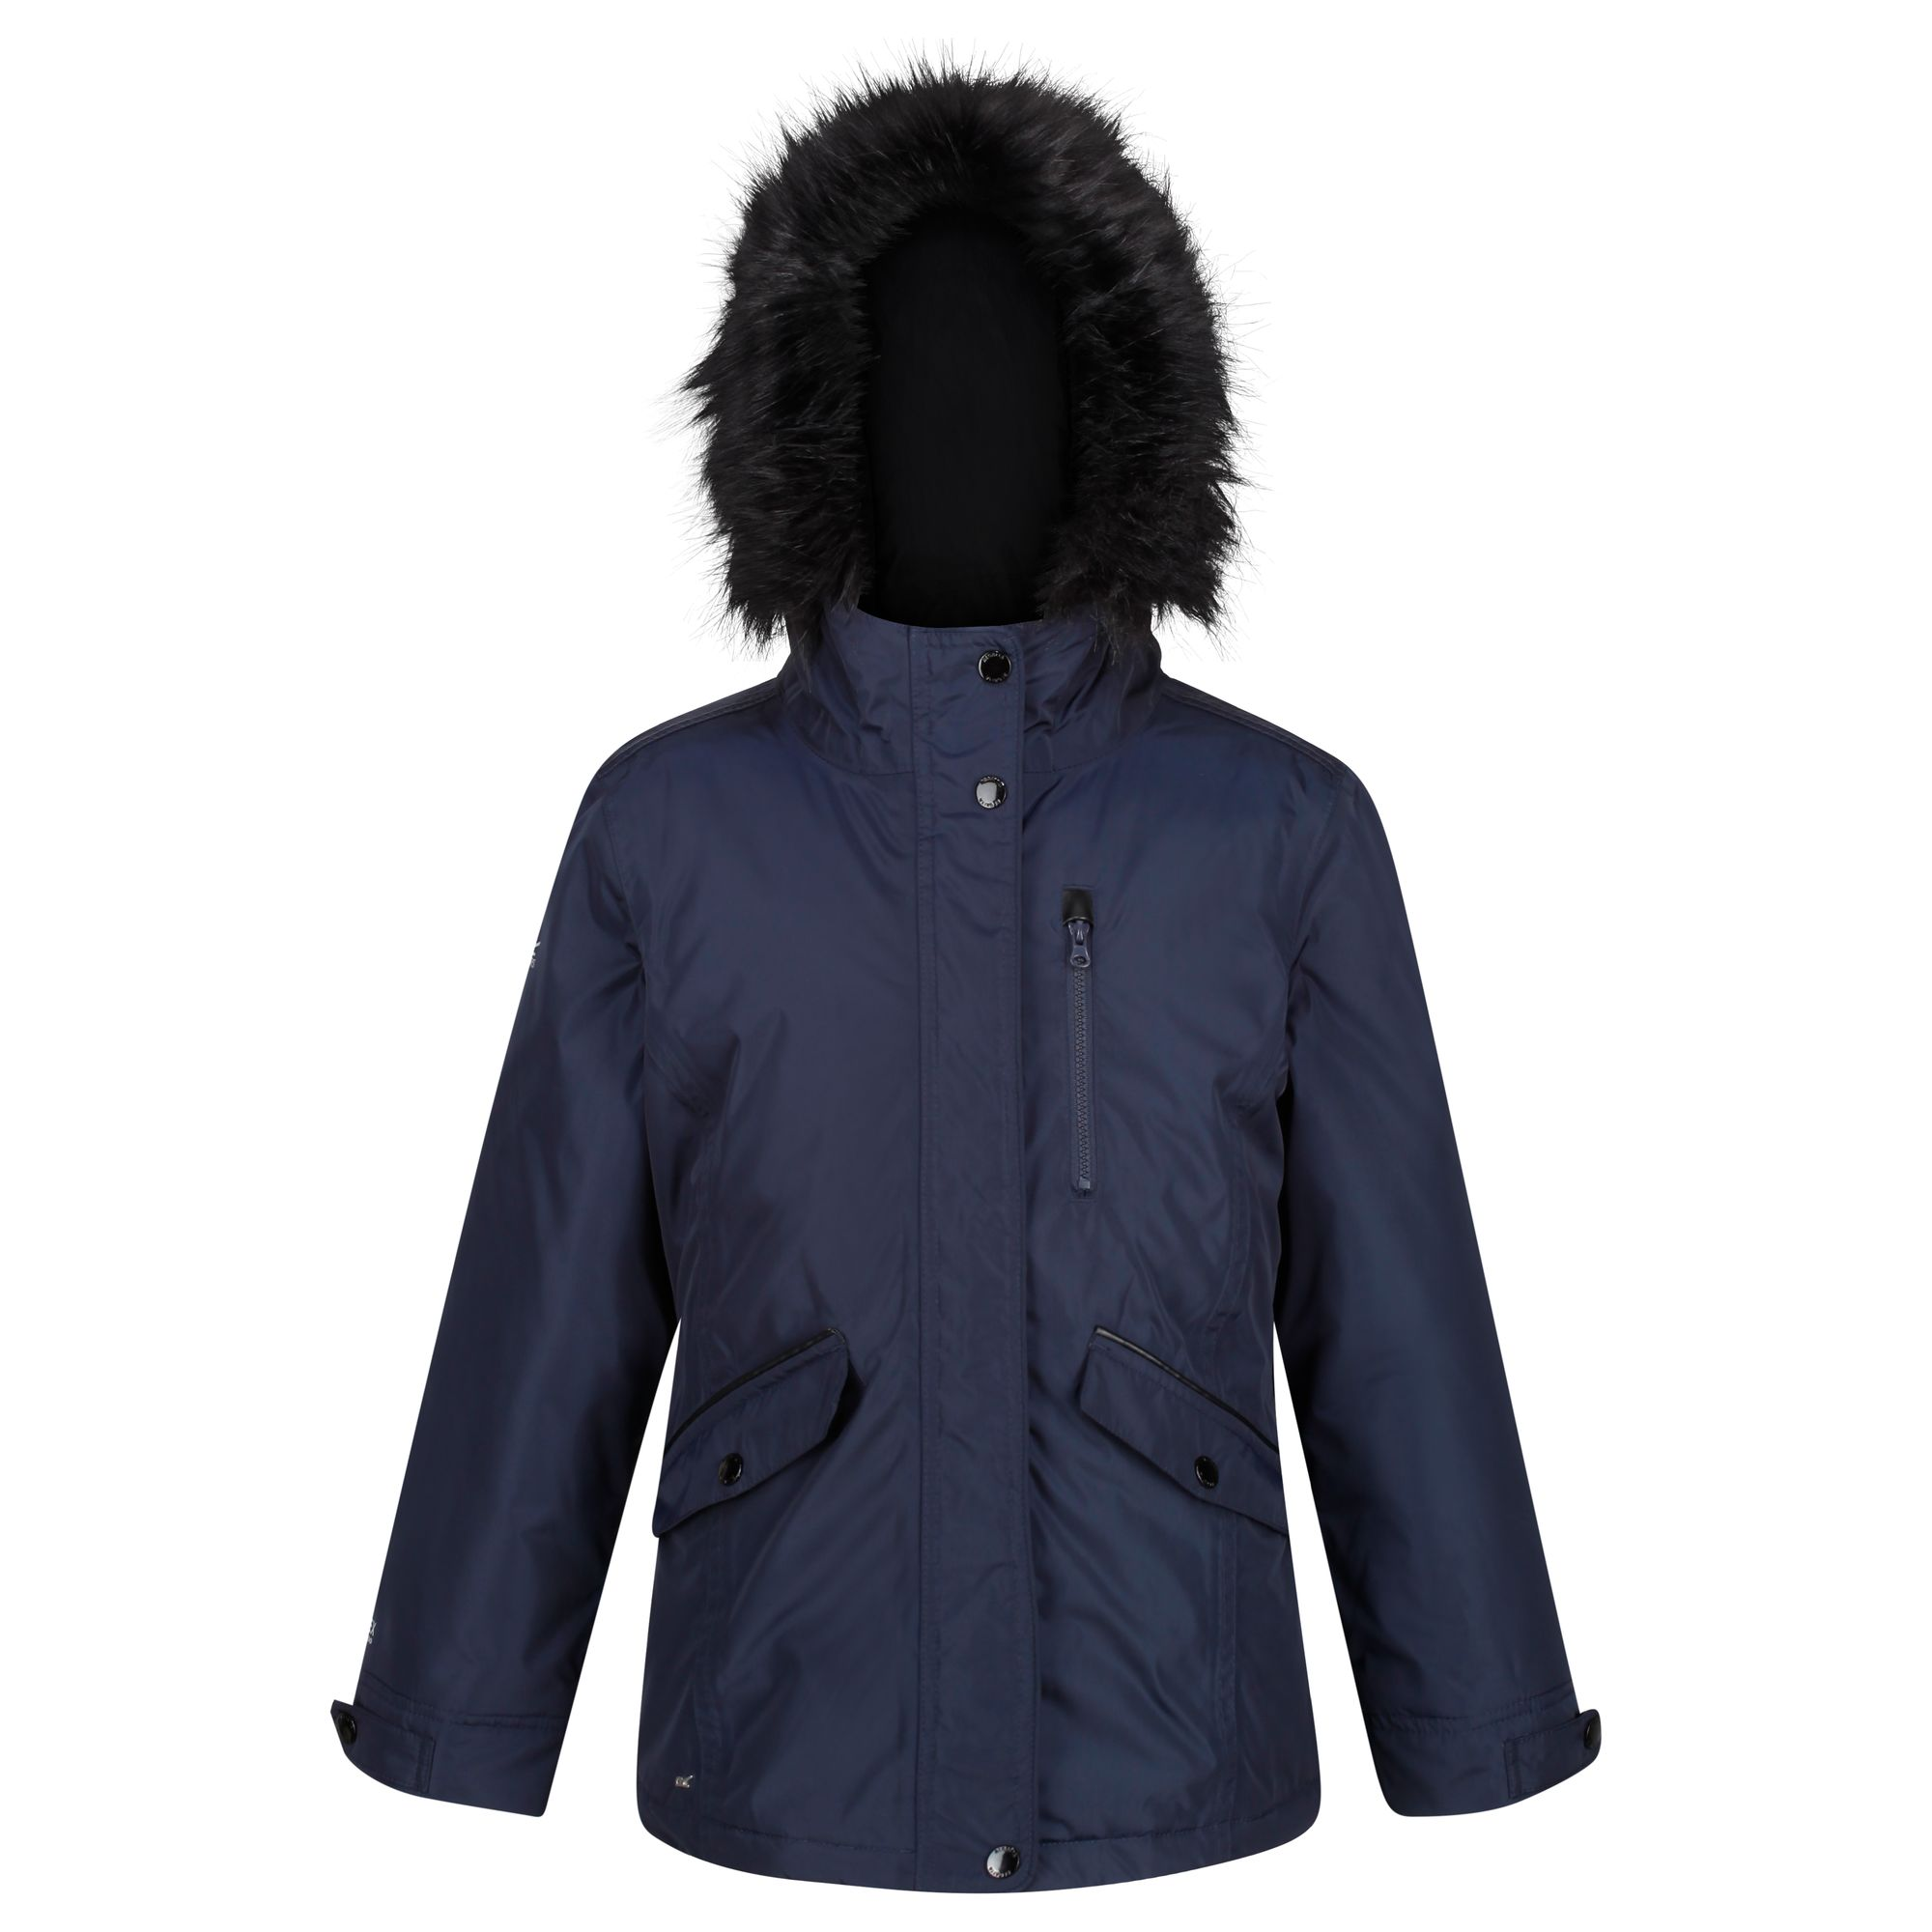 Kids' navy thick jacket with fur hood